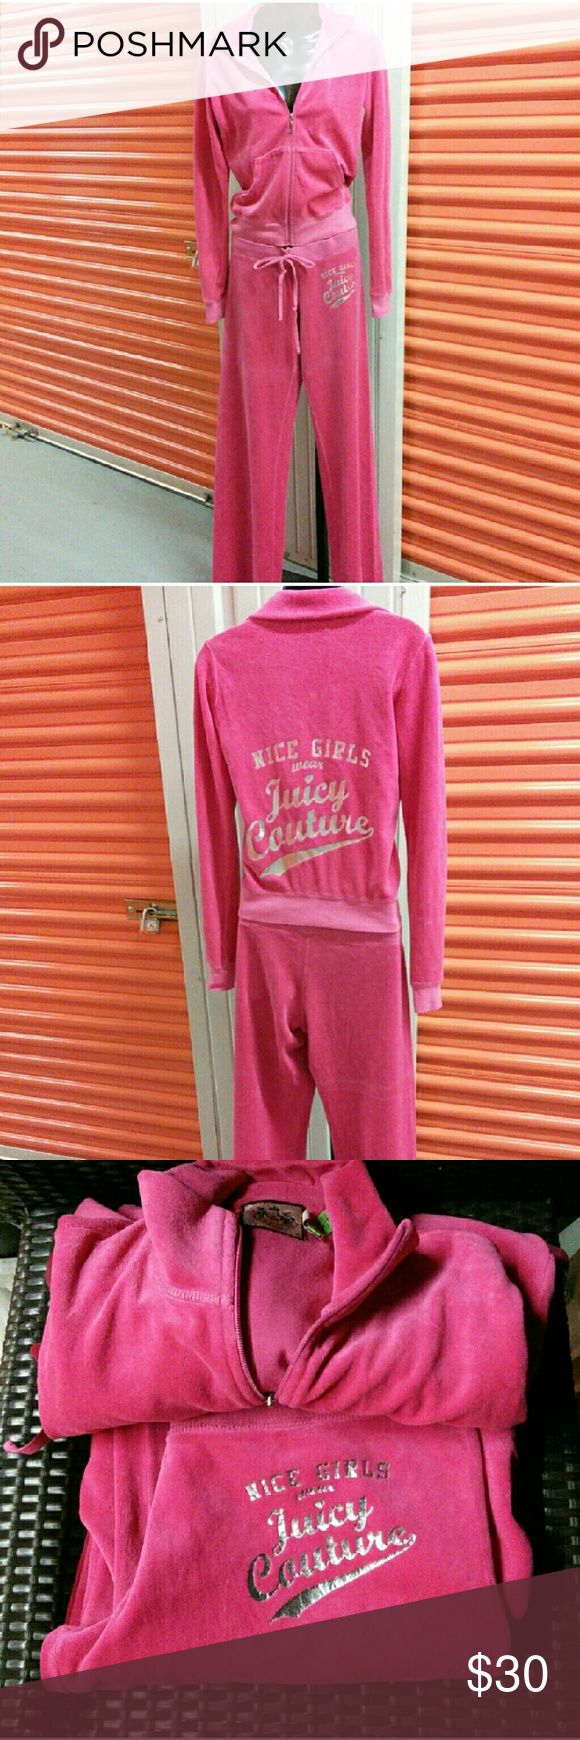 Spotted while shopping on Poshmark: Juicy Couture Sweatsuit! #poshmark #fashion #shopping #style #Juicy Couture #Other